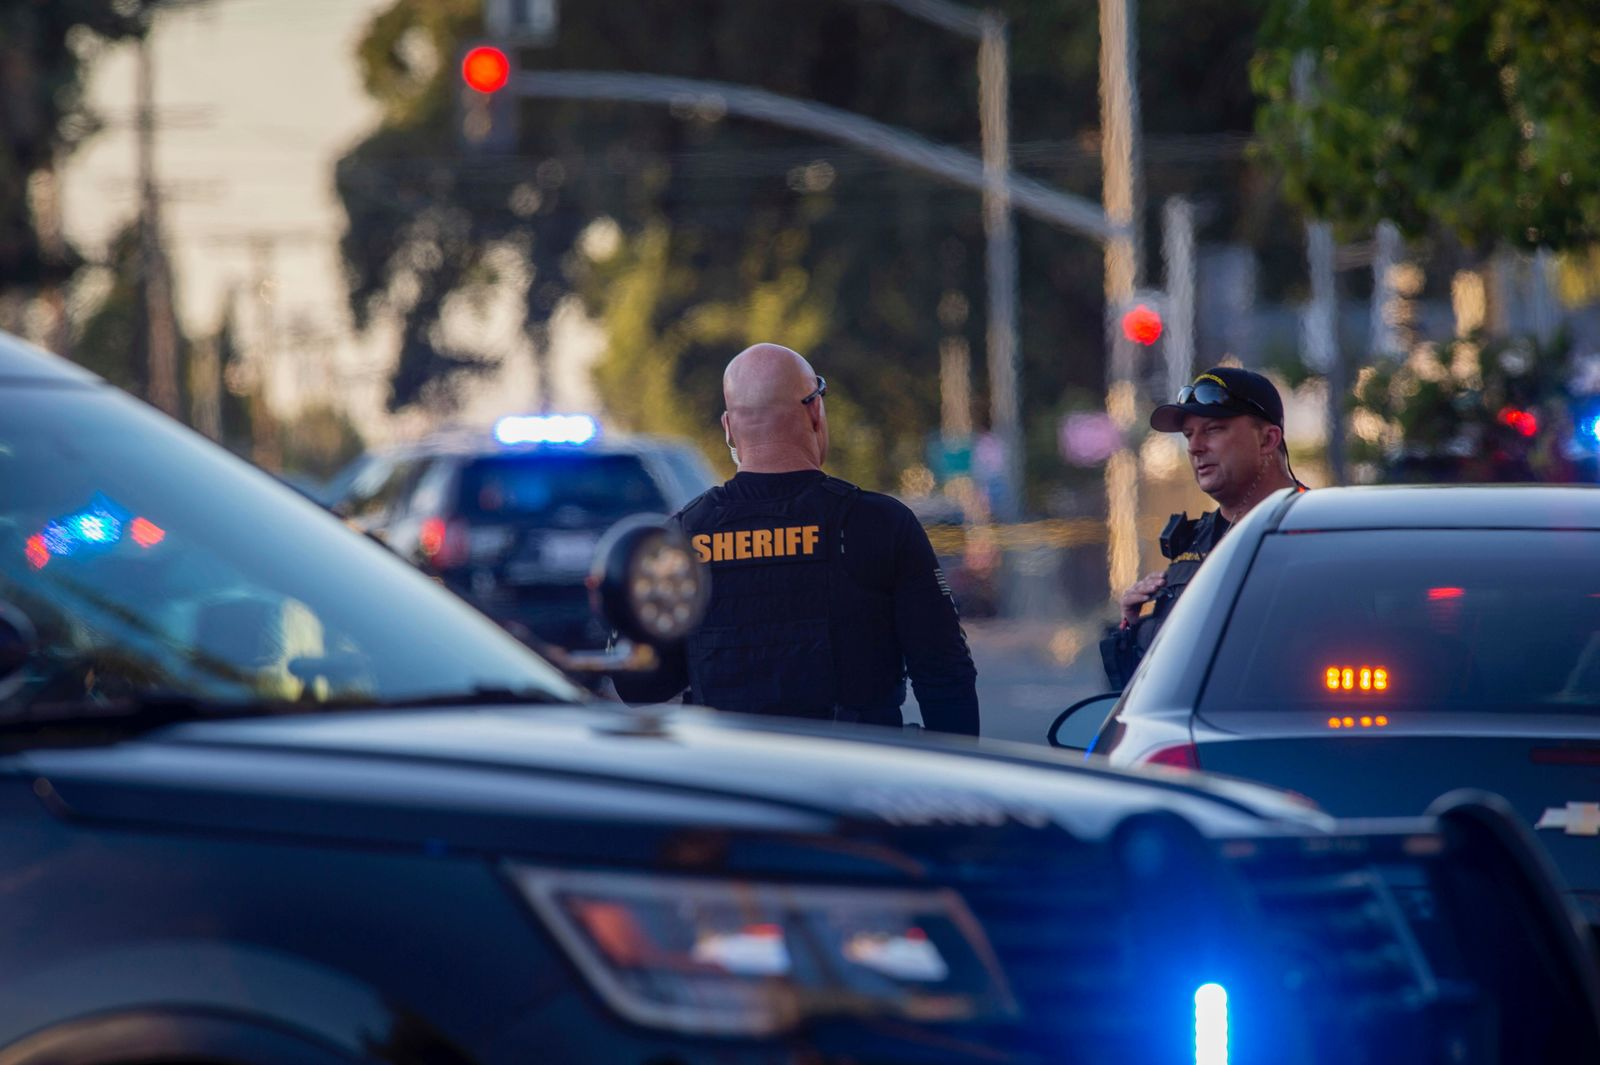 Sacramento County Sheriff's Department deputies talk, Wednesday, June 19, 2019, on Grove Avenue in Sacramento, Calif., where an armed subject fired on police officers. (Daniel Kim/The Sacramento Bee via AP)